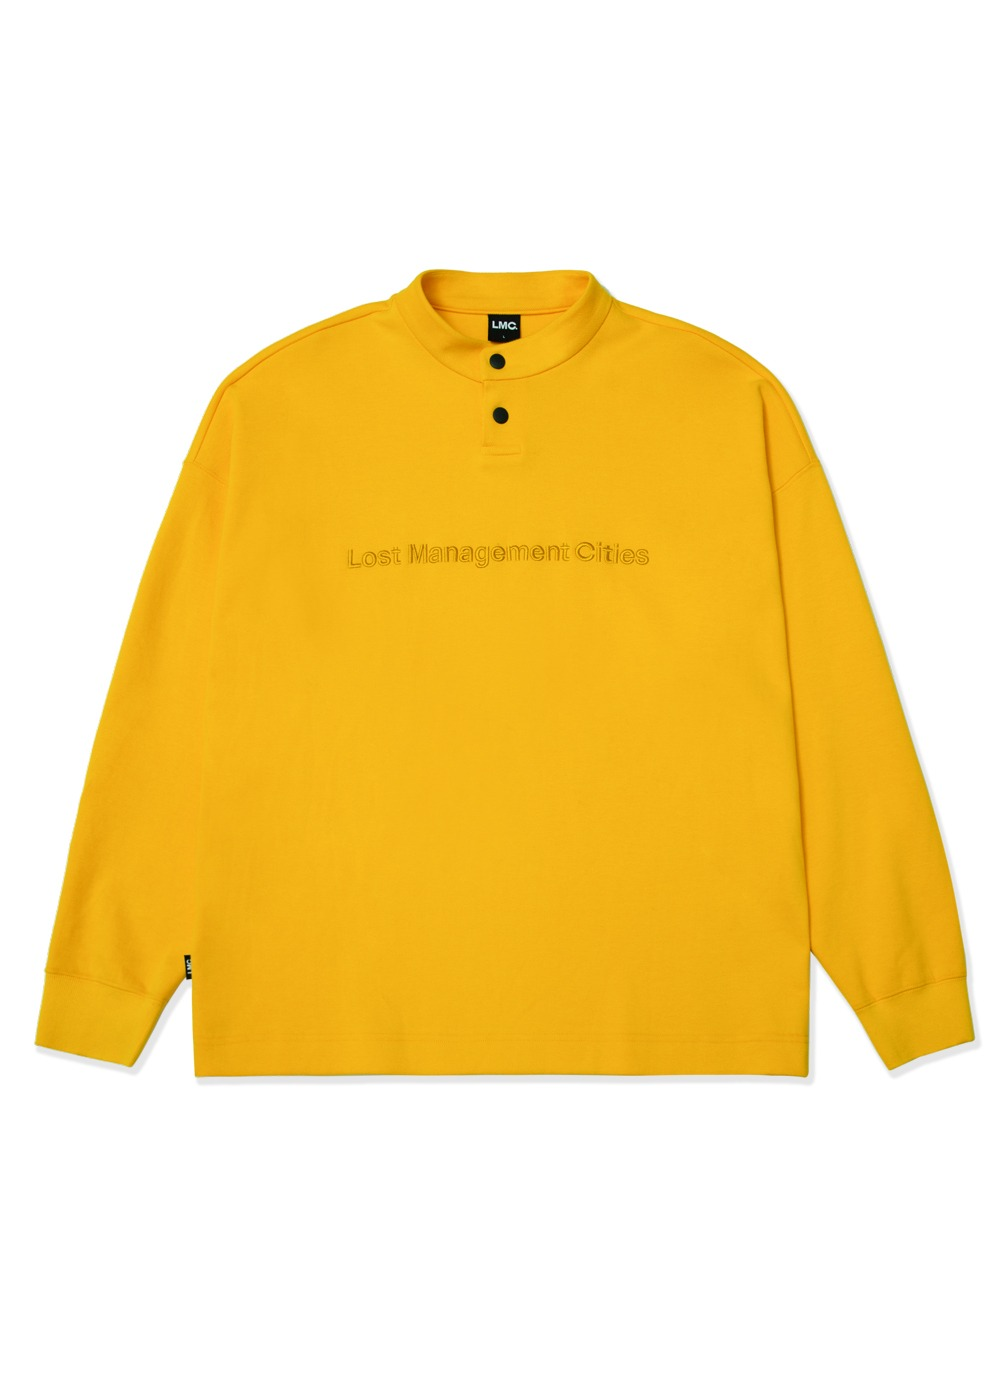 LMC PK PULLOVER LONG SLV TEE yellow